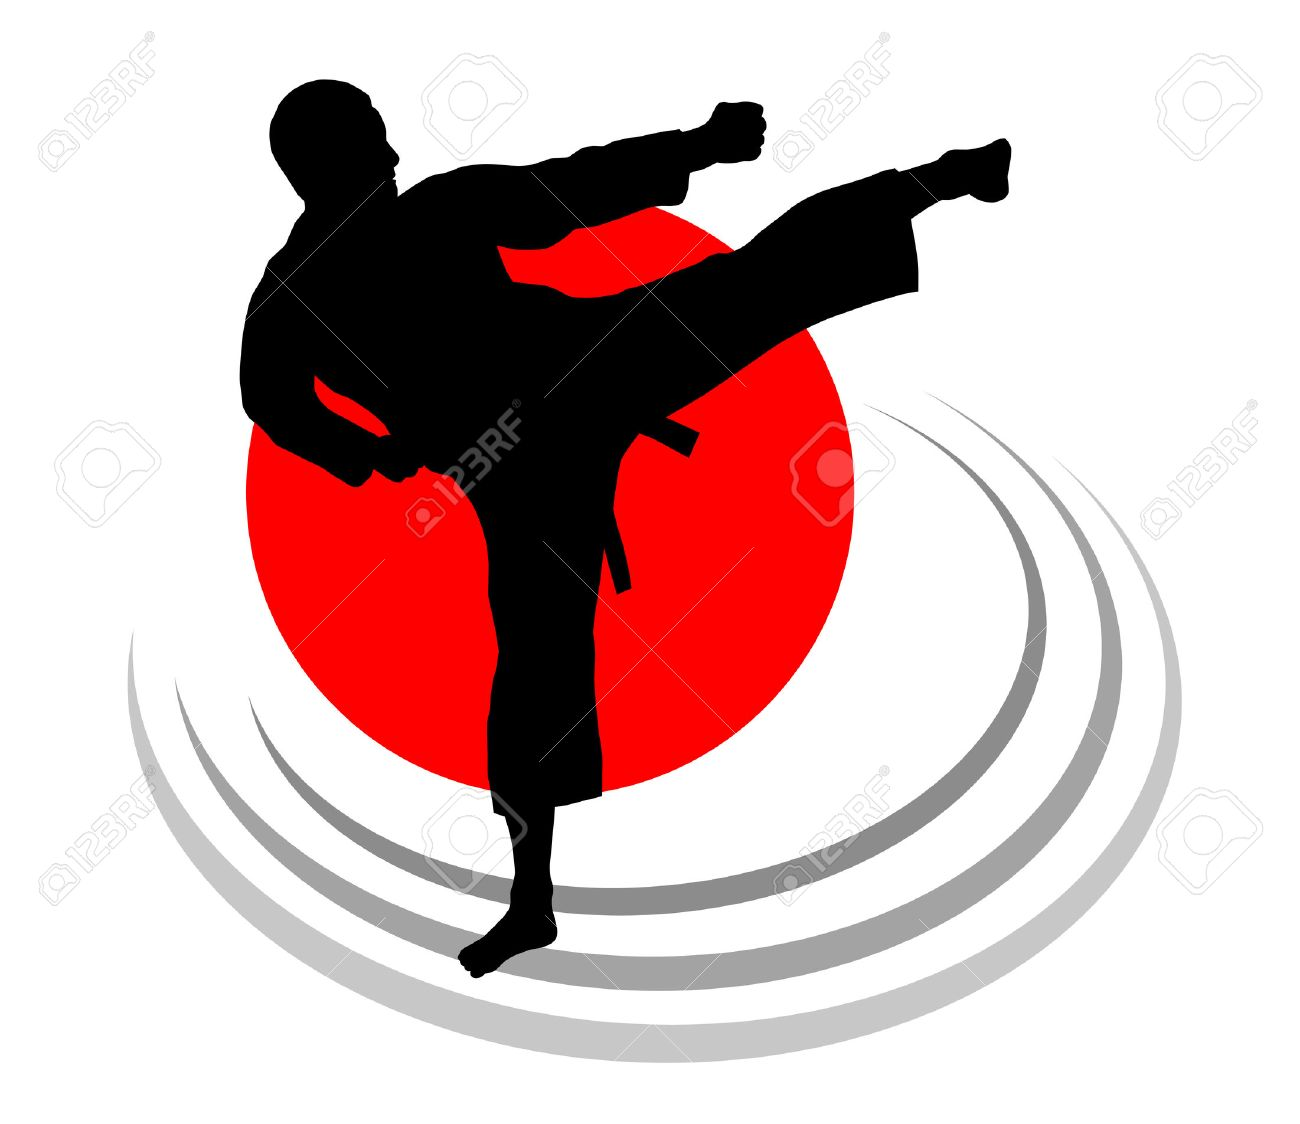 Illustration – karate silhouette with elements - 22865482